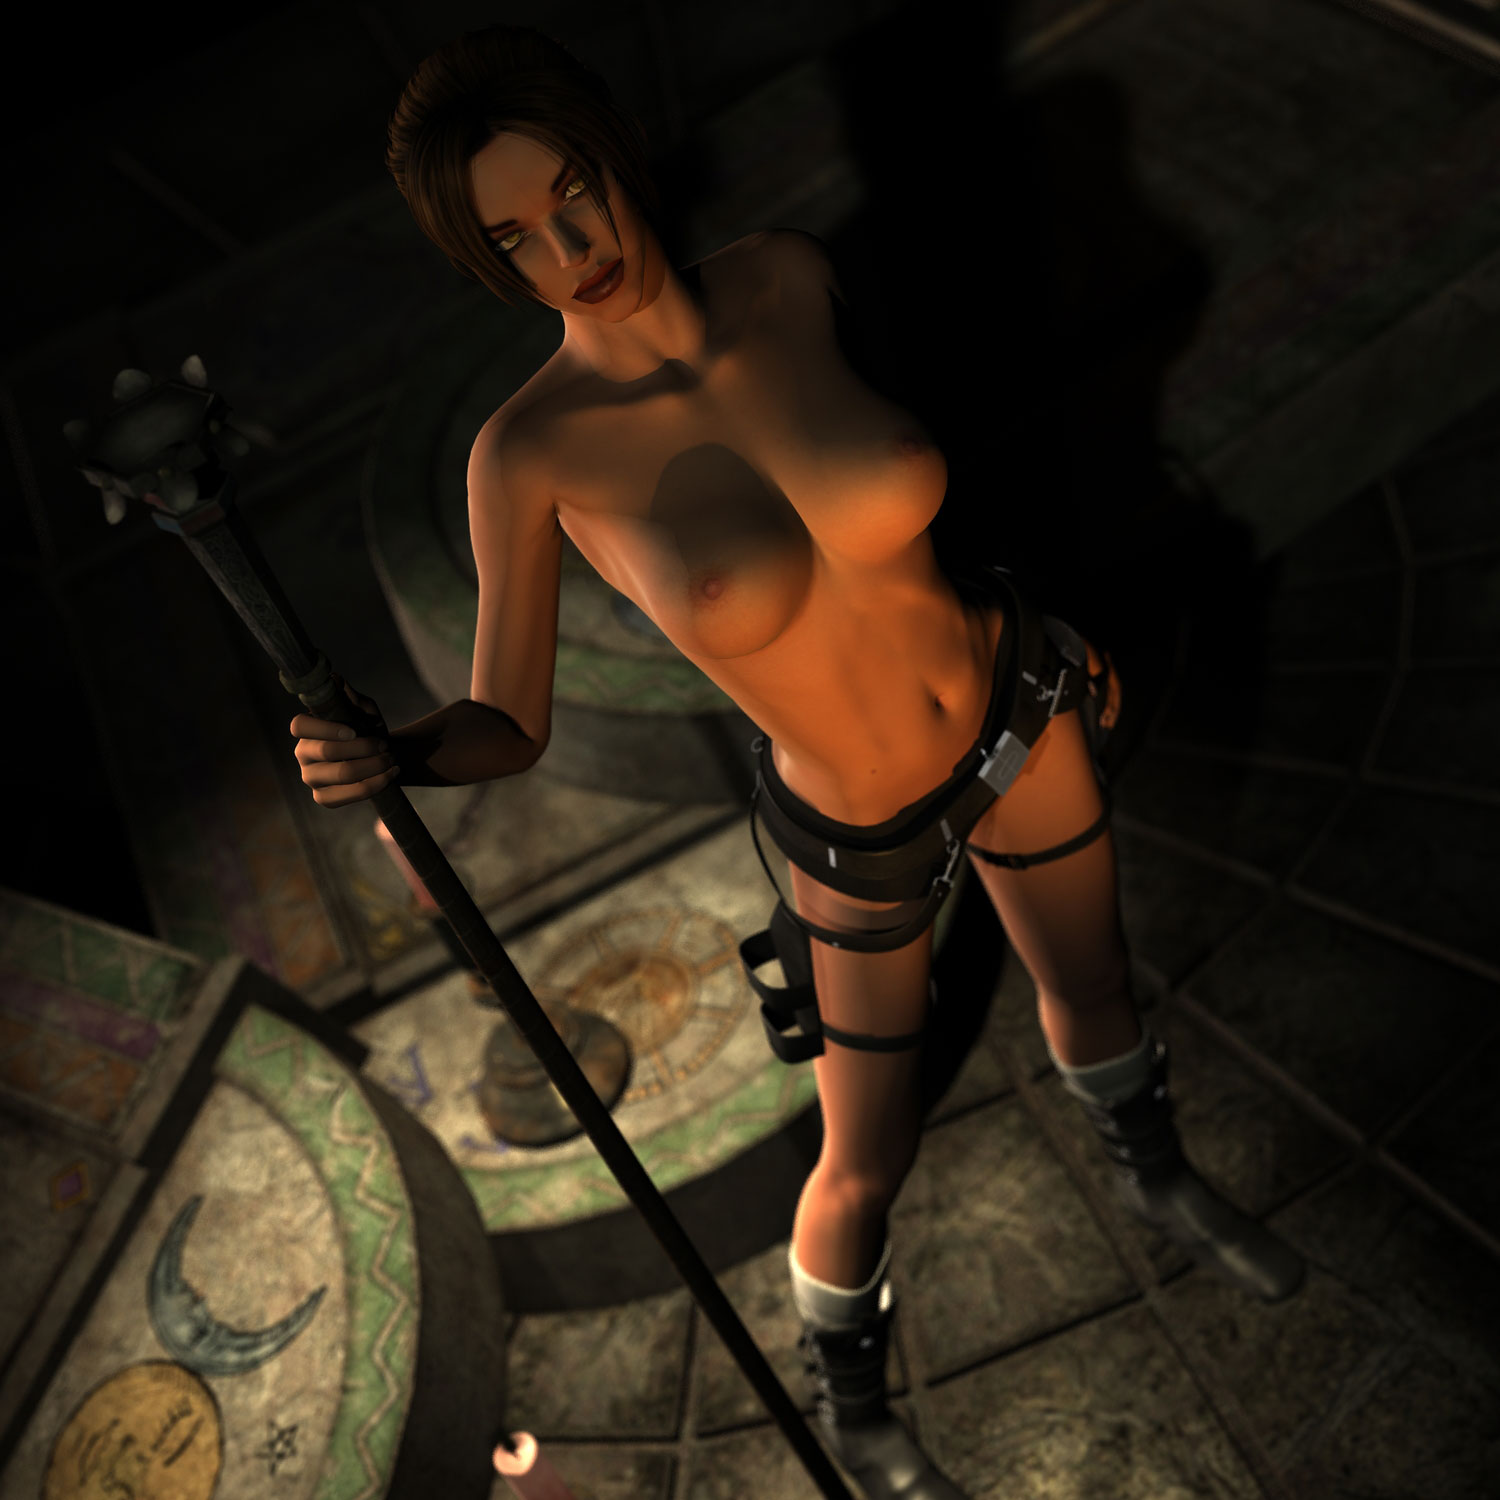 Lara craft tomb rider nude porn photos sexy image